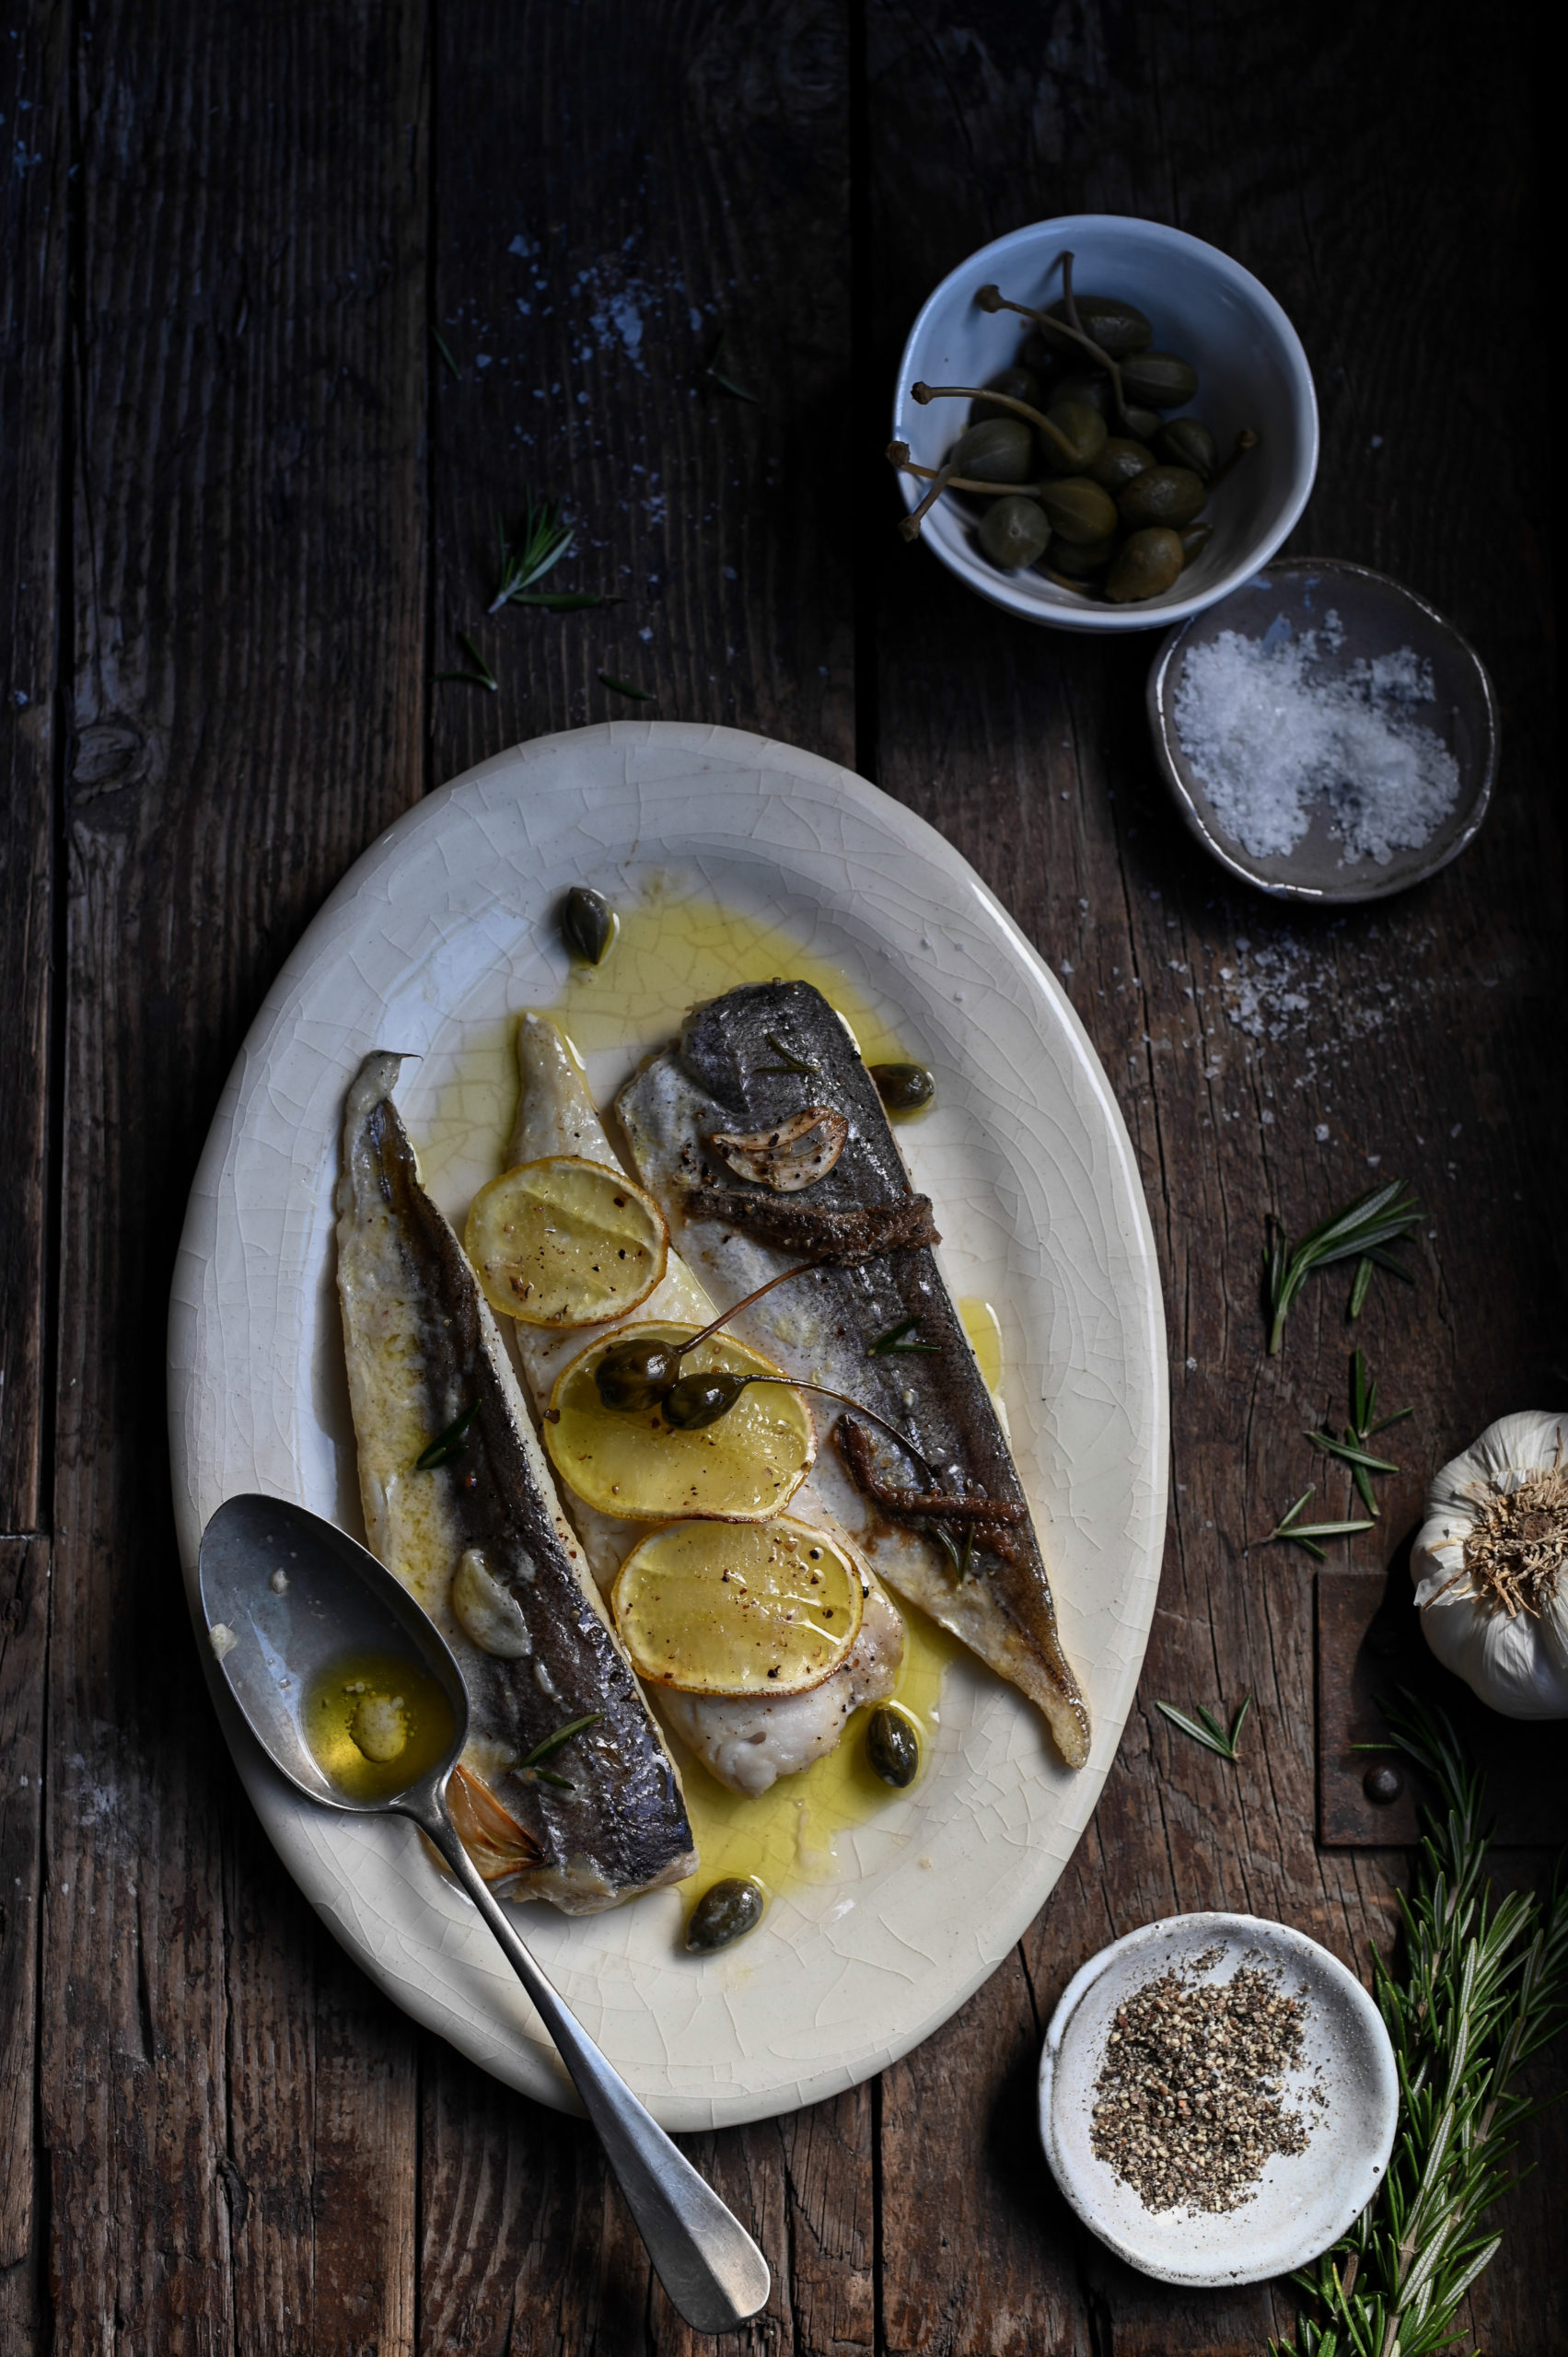 SICILIAN-STYLE GRILLED HAKE